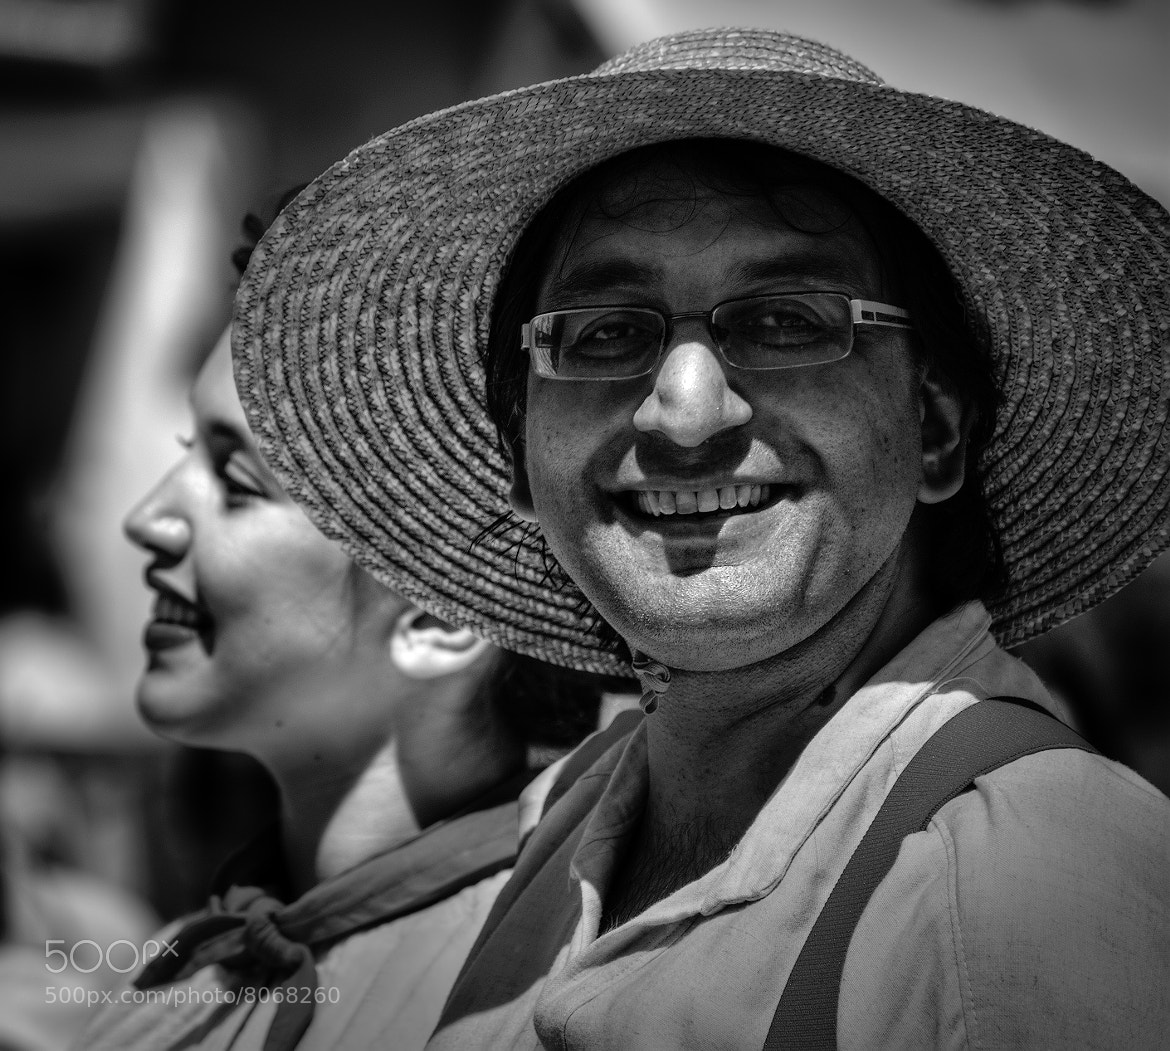 Photograph Sonrisa by Manolo P. on 500px